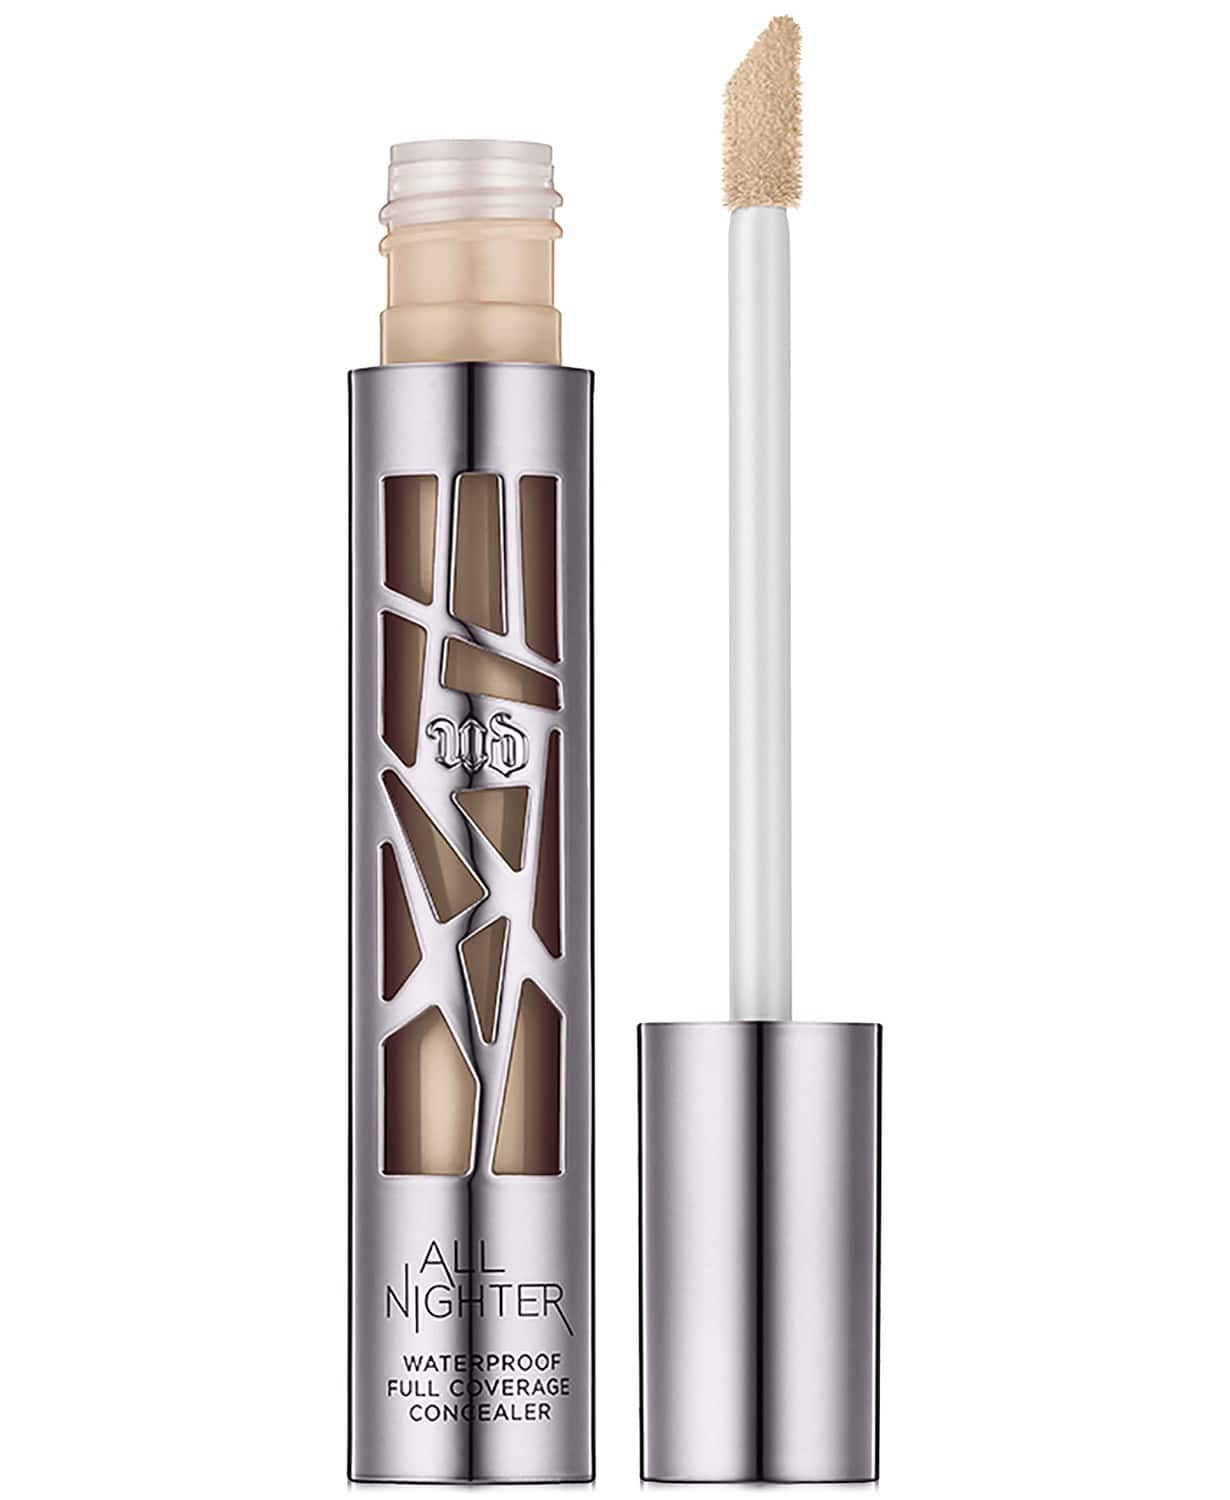 Urban Decay All Nighter Waterproof Full Coverage Concealer $14.50 + Free Store Pickup at Macy's or Free Shipping $25+